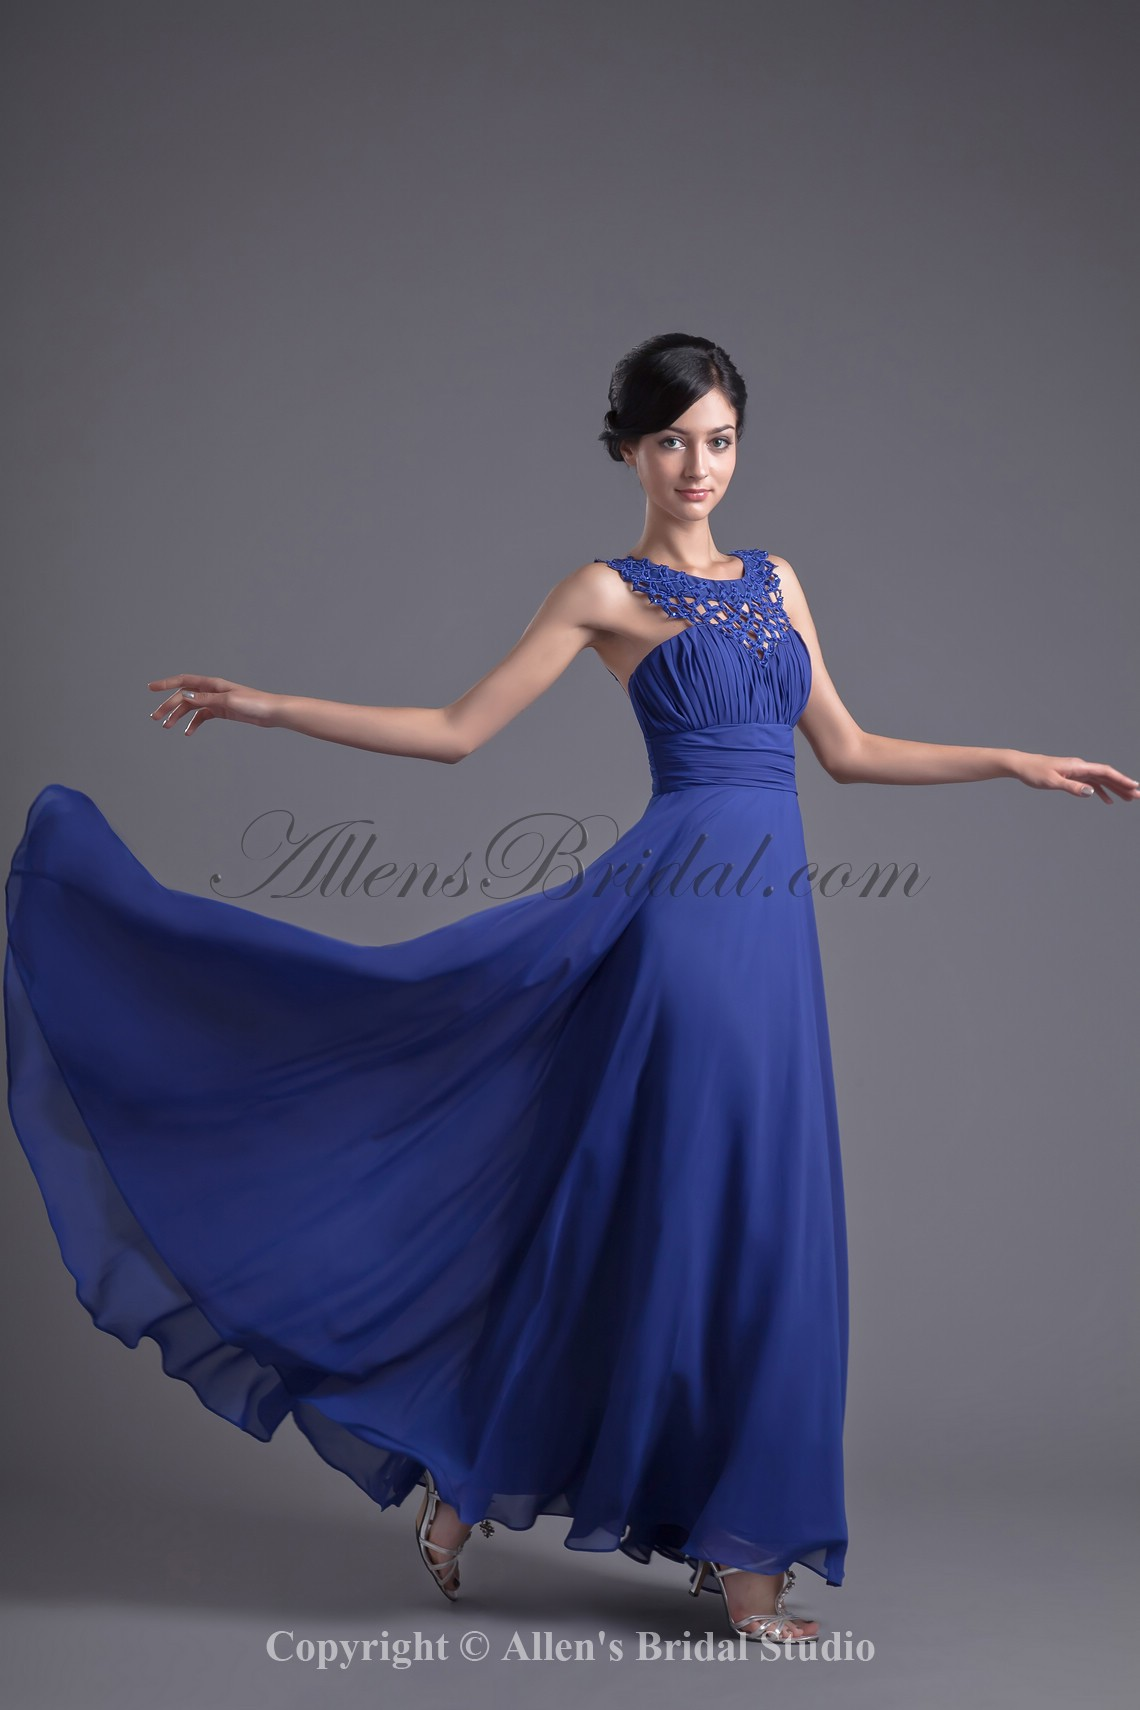 /21-162/chiffon-jewel-neckline-a-line-floor-length-beading-prom-dress.jpg